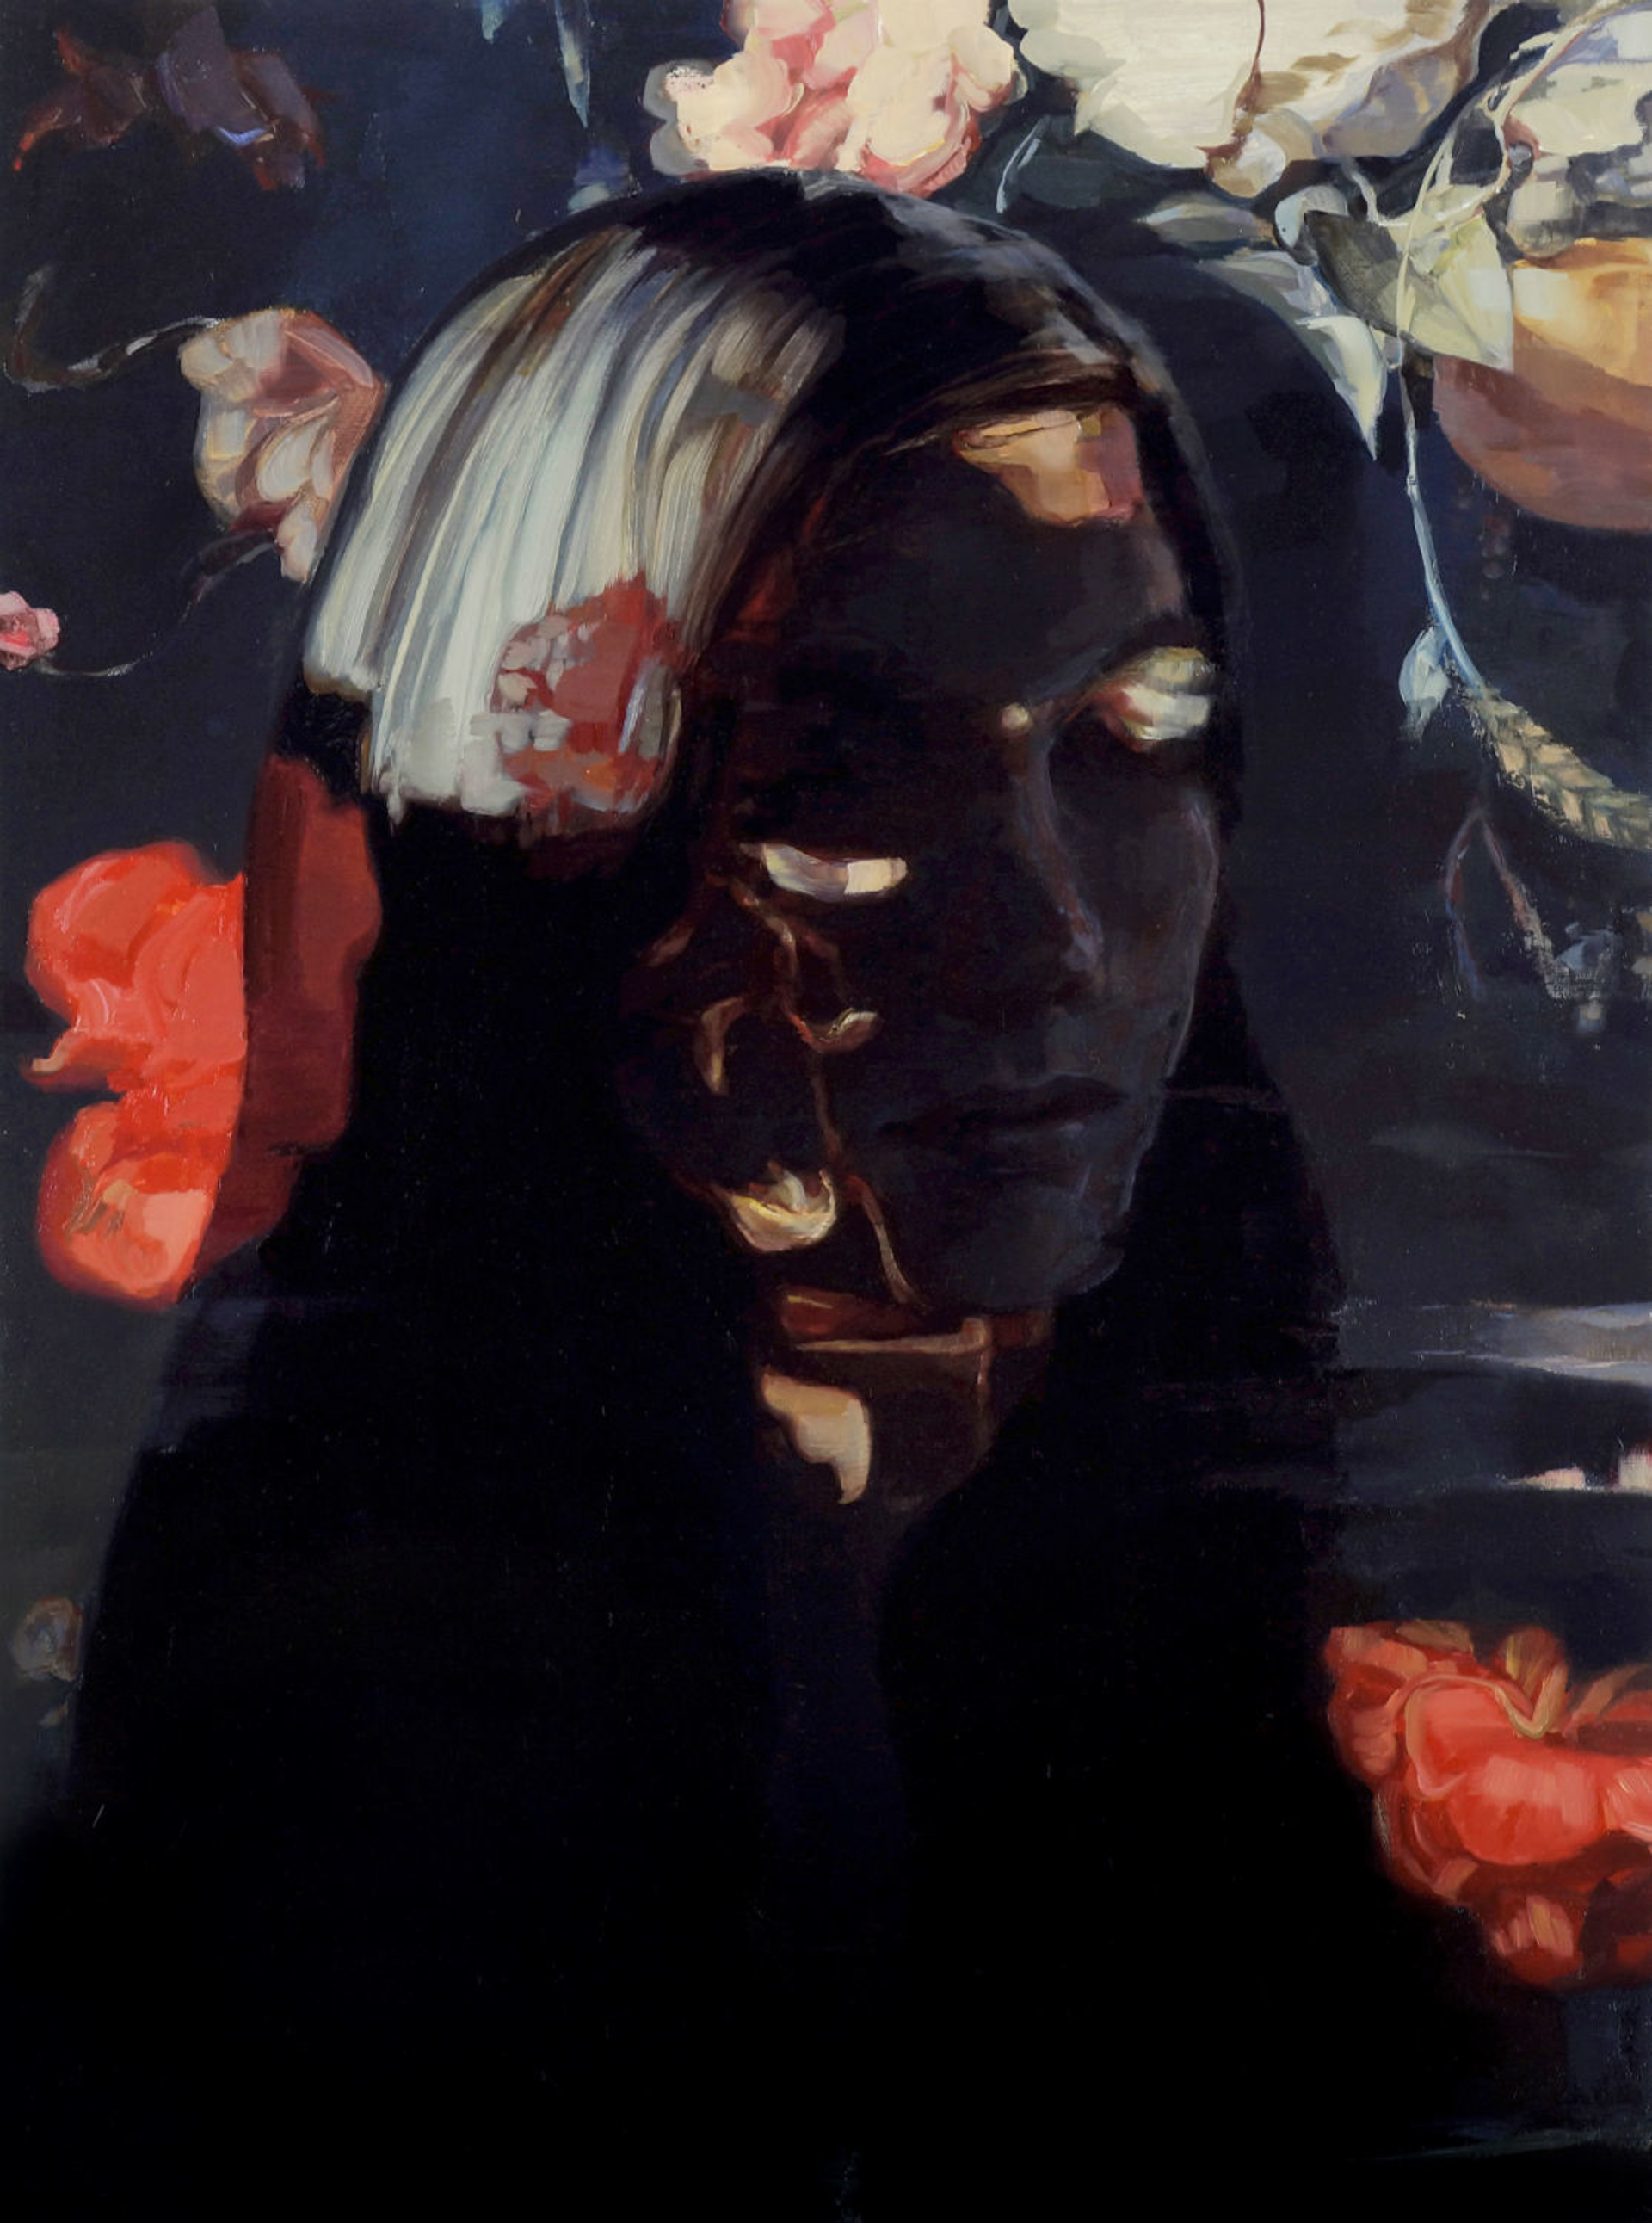 Union by Meghan Howland